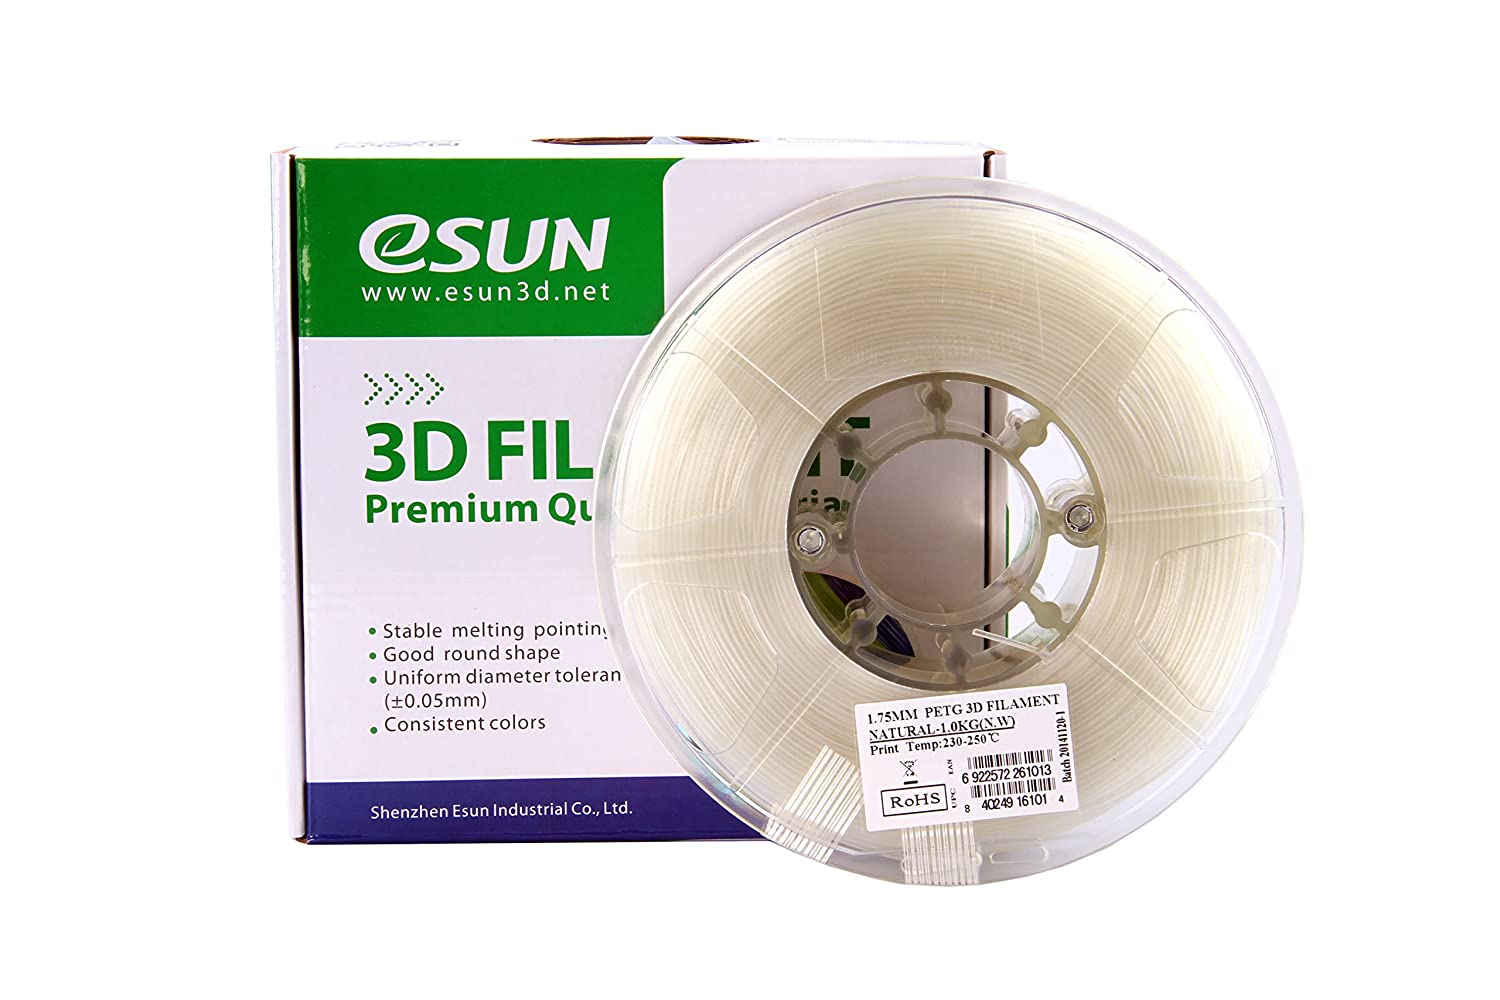 Color printing csun - Amazon Com Esun 3d 1 75mm Petg Natural Filament 1kg 2 2lb Petg 3d Printer Filament Semi Transparent 1 75mm Natural Industrial Scientific